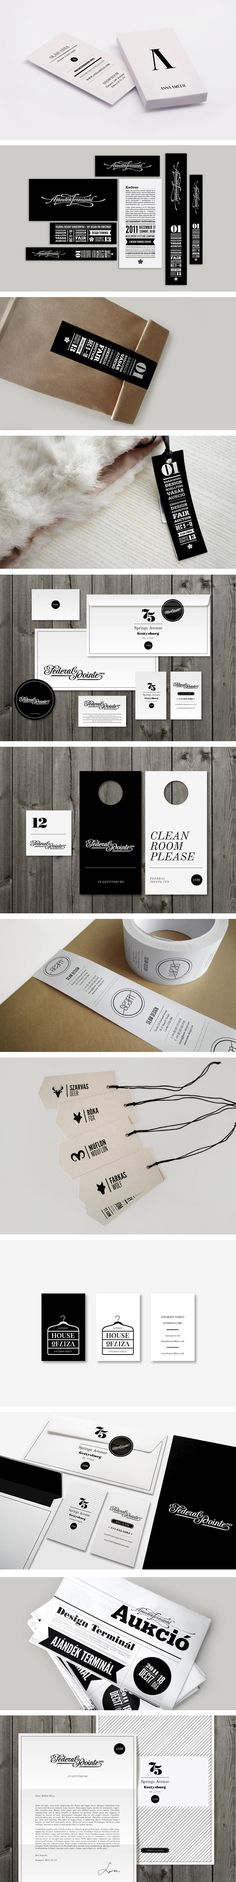 A lovely collection of branding work by Kiss Miklos. Tags and labels in black and white packaging PD